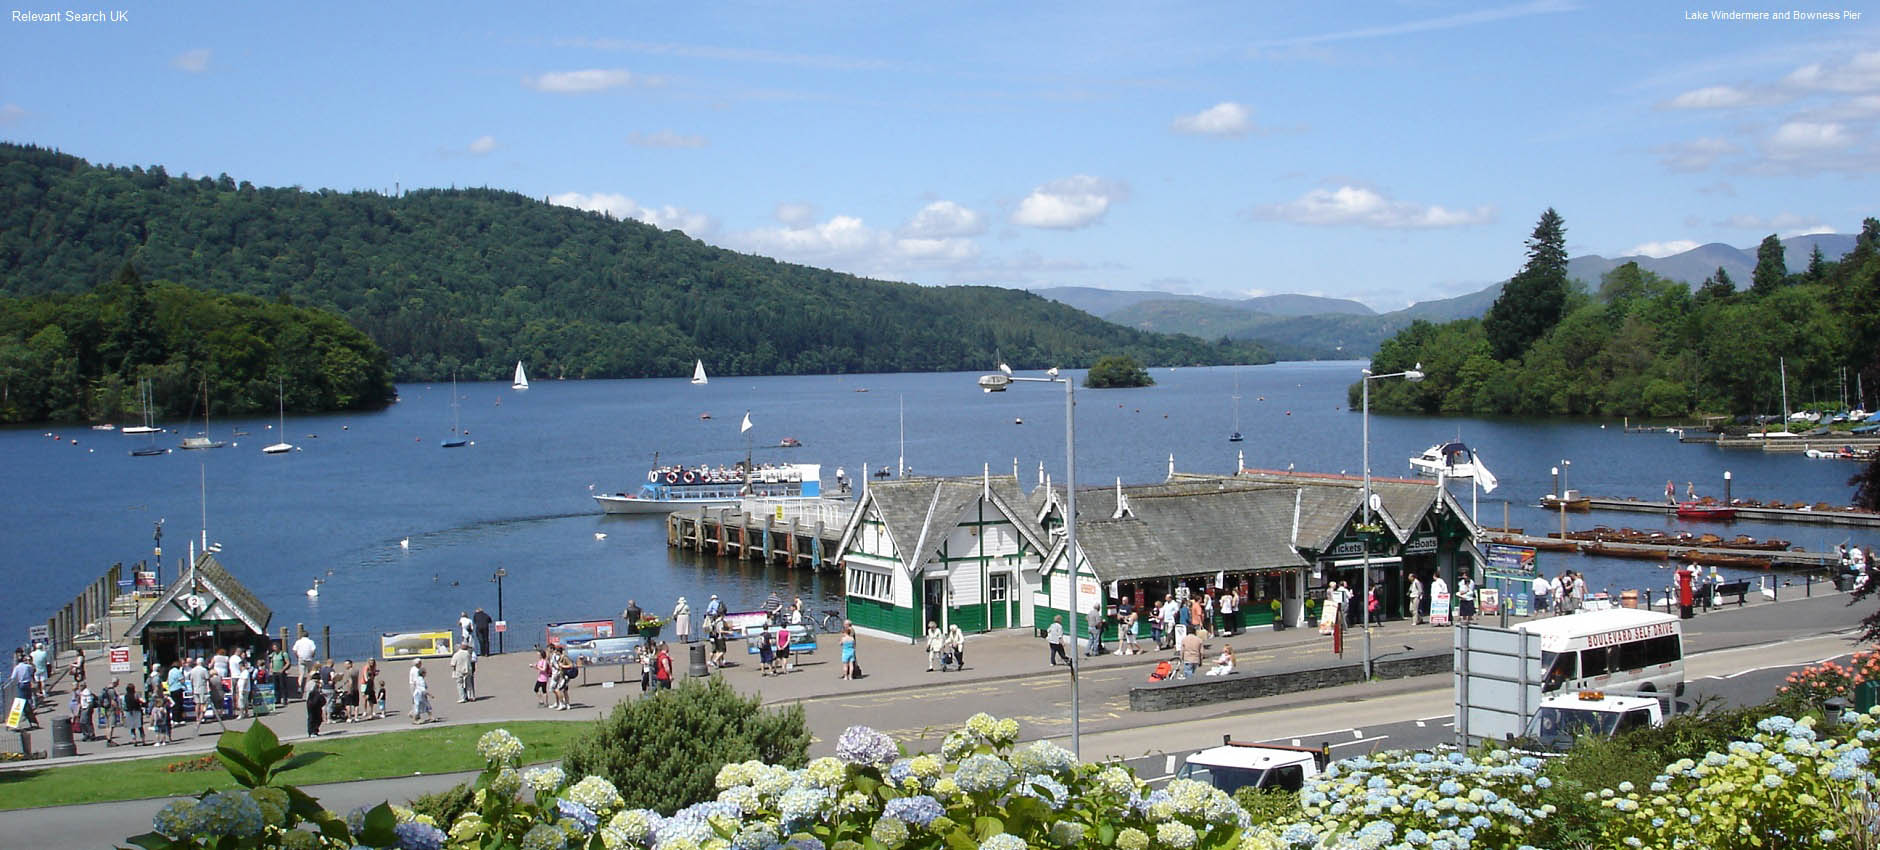 Most Beautiful Attractions In The Lake District Sunshine